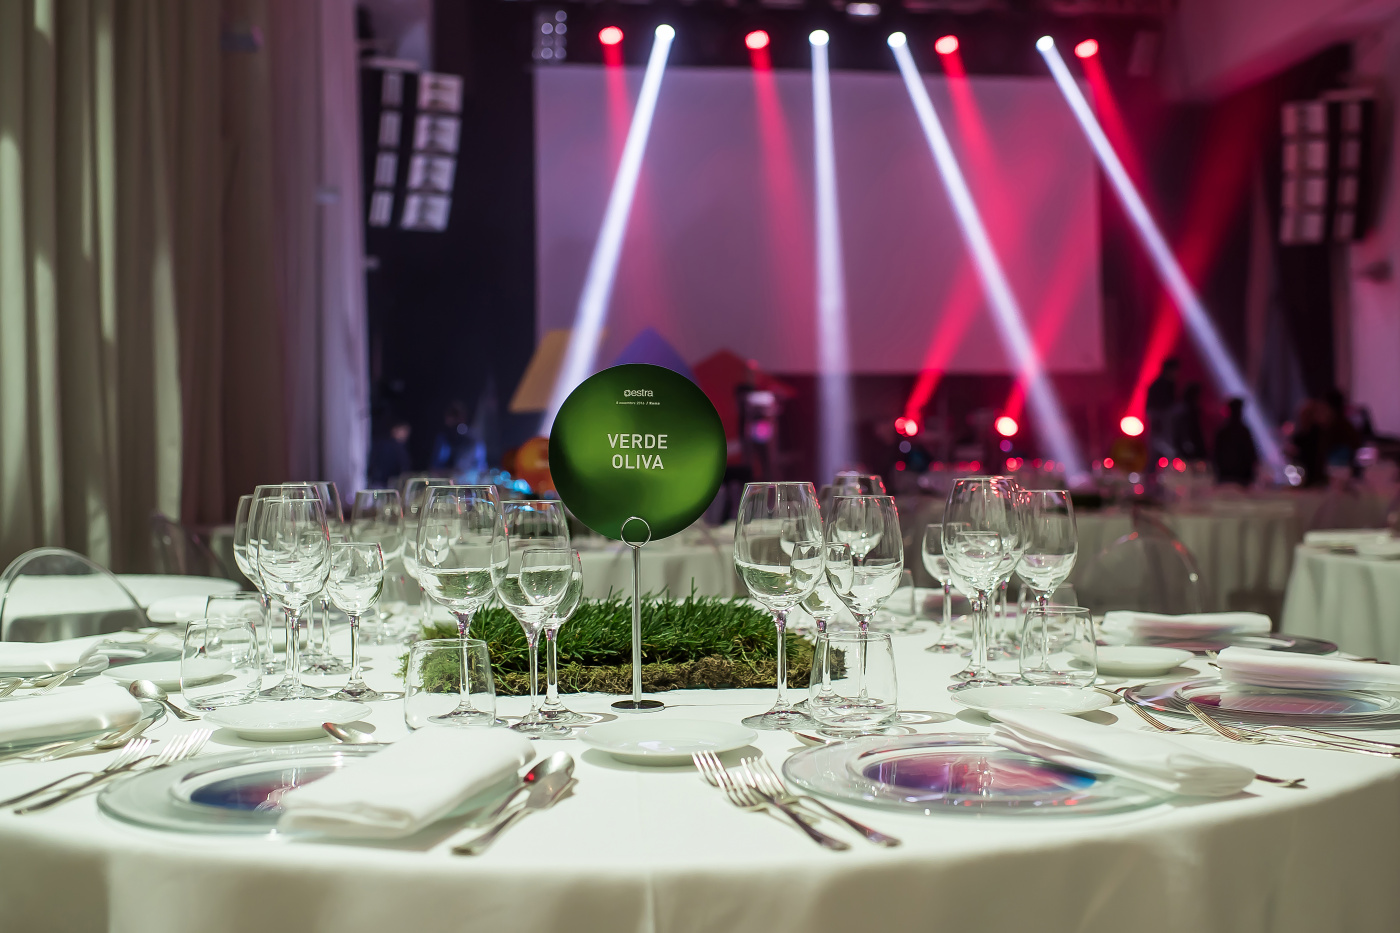 Event in Rome with table decor with colored spheres